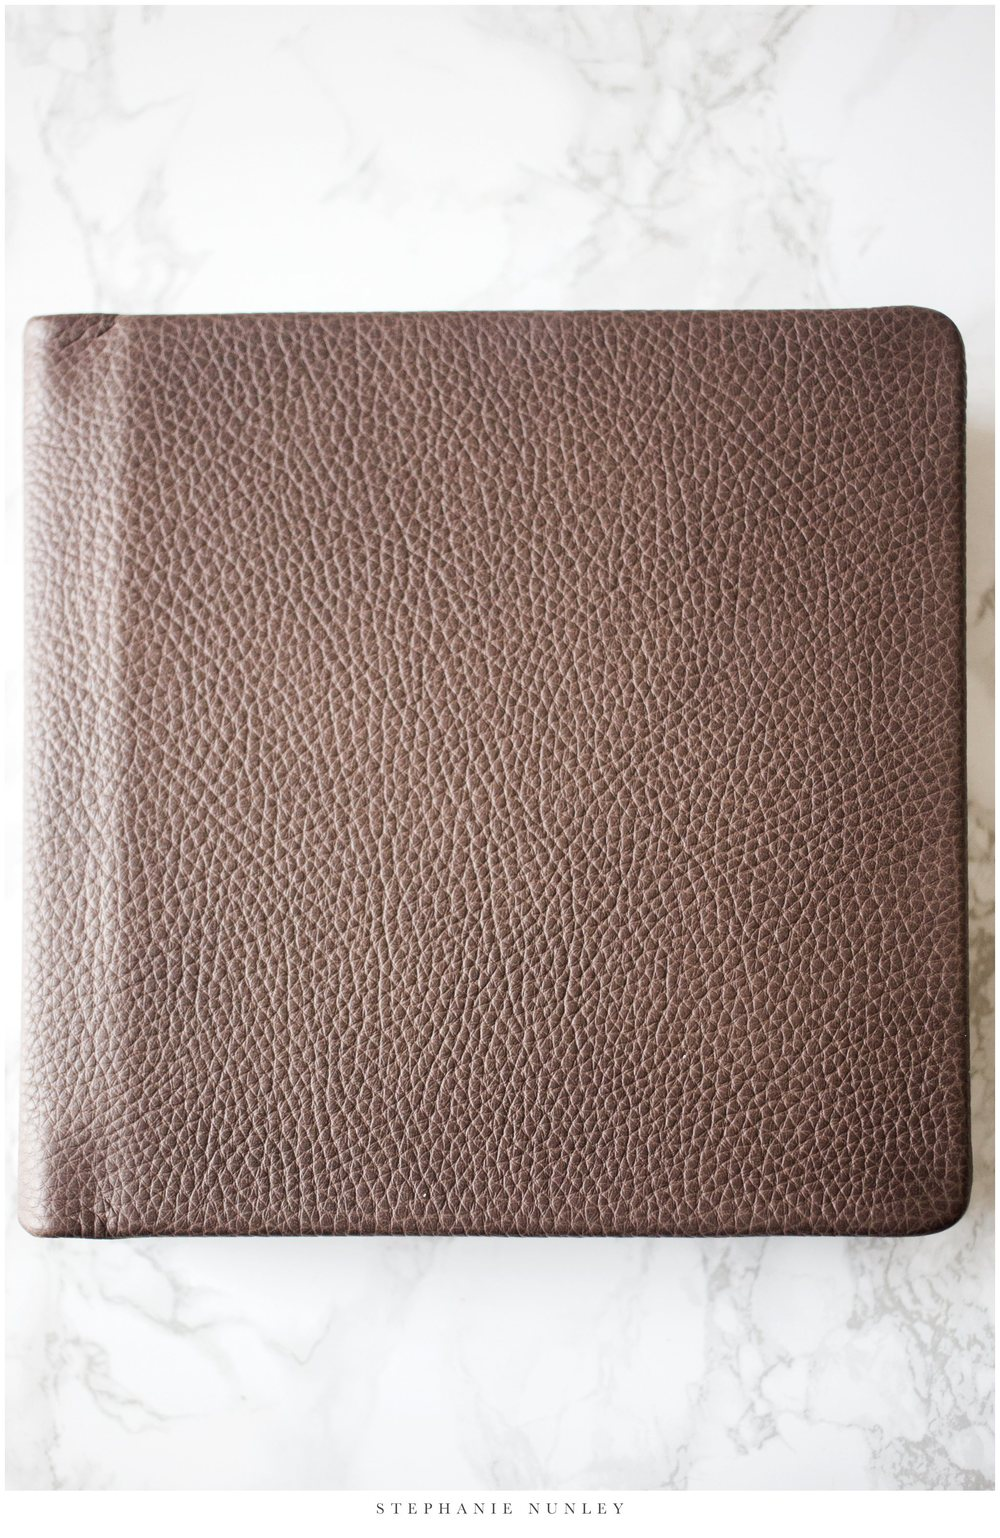 heirloom-leather-wedding-album-0002.jpg